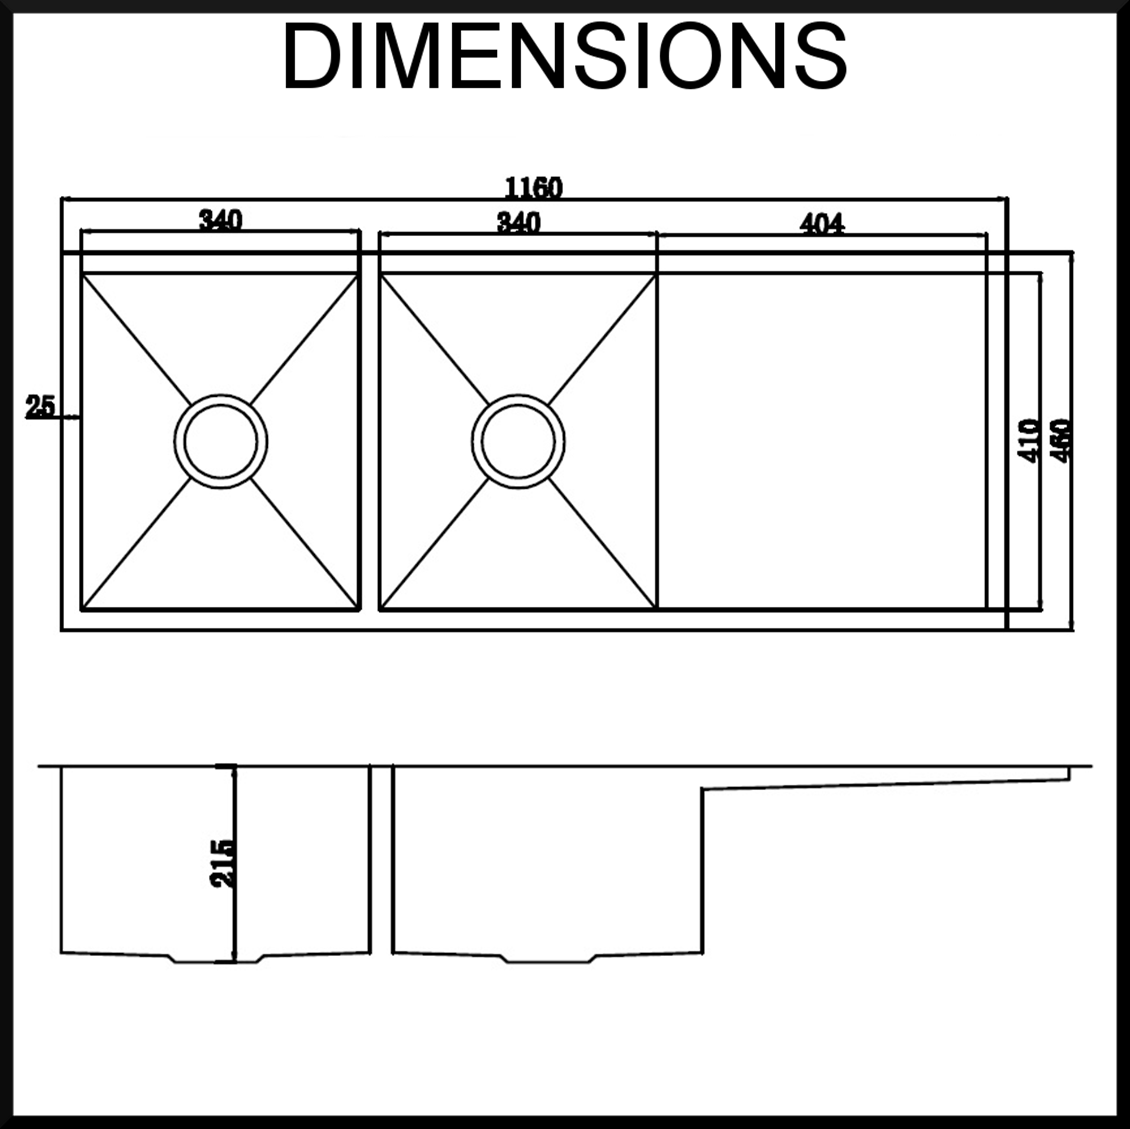 undermount kitchen sink sizes home depot packages dimensions